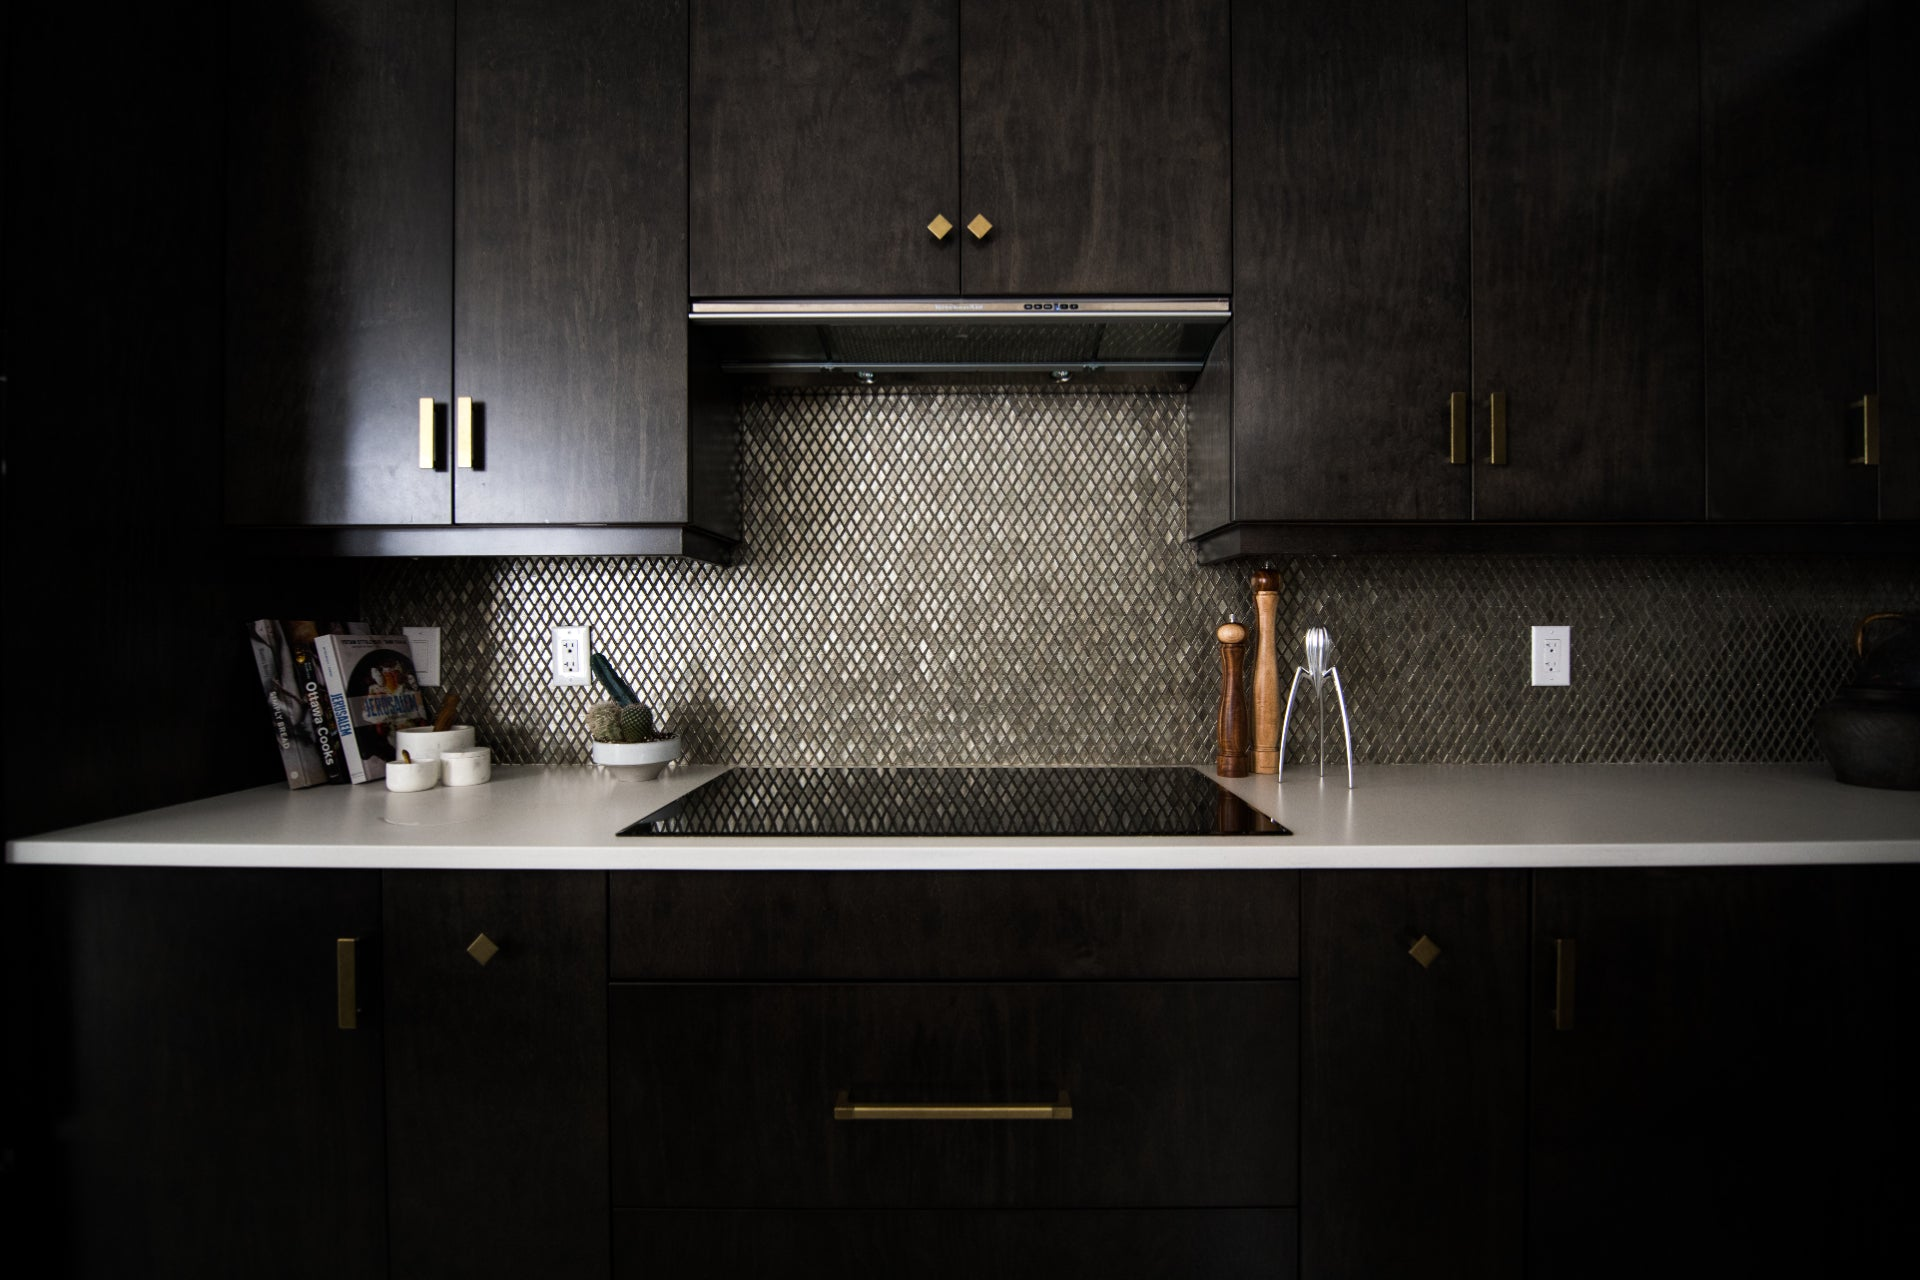 Moody Kitchen with Black and Gold Accents